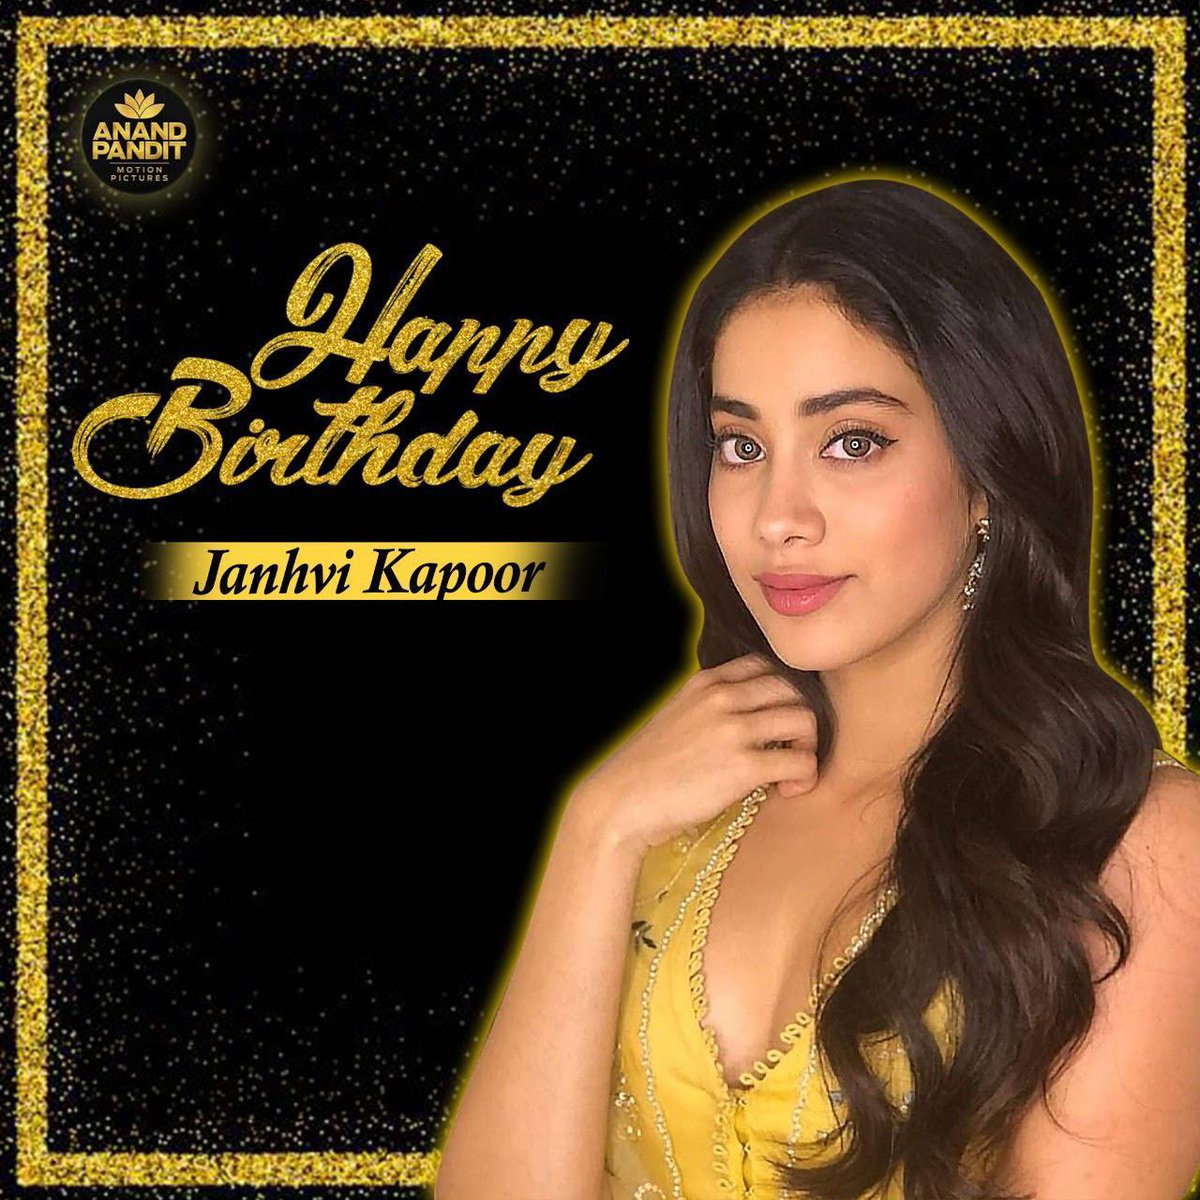 Wishing the beautiful and charming Janhvi Kapoor a very happy birthday! Have a great year ahead!  #JanhviKapoor #HappyBirthdayJanhviKapoor https://t.co/qUWMGxI11w